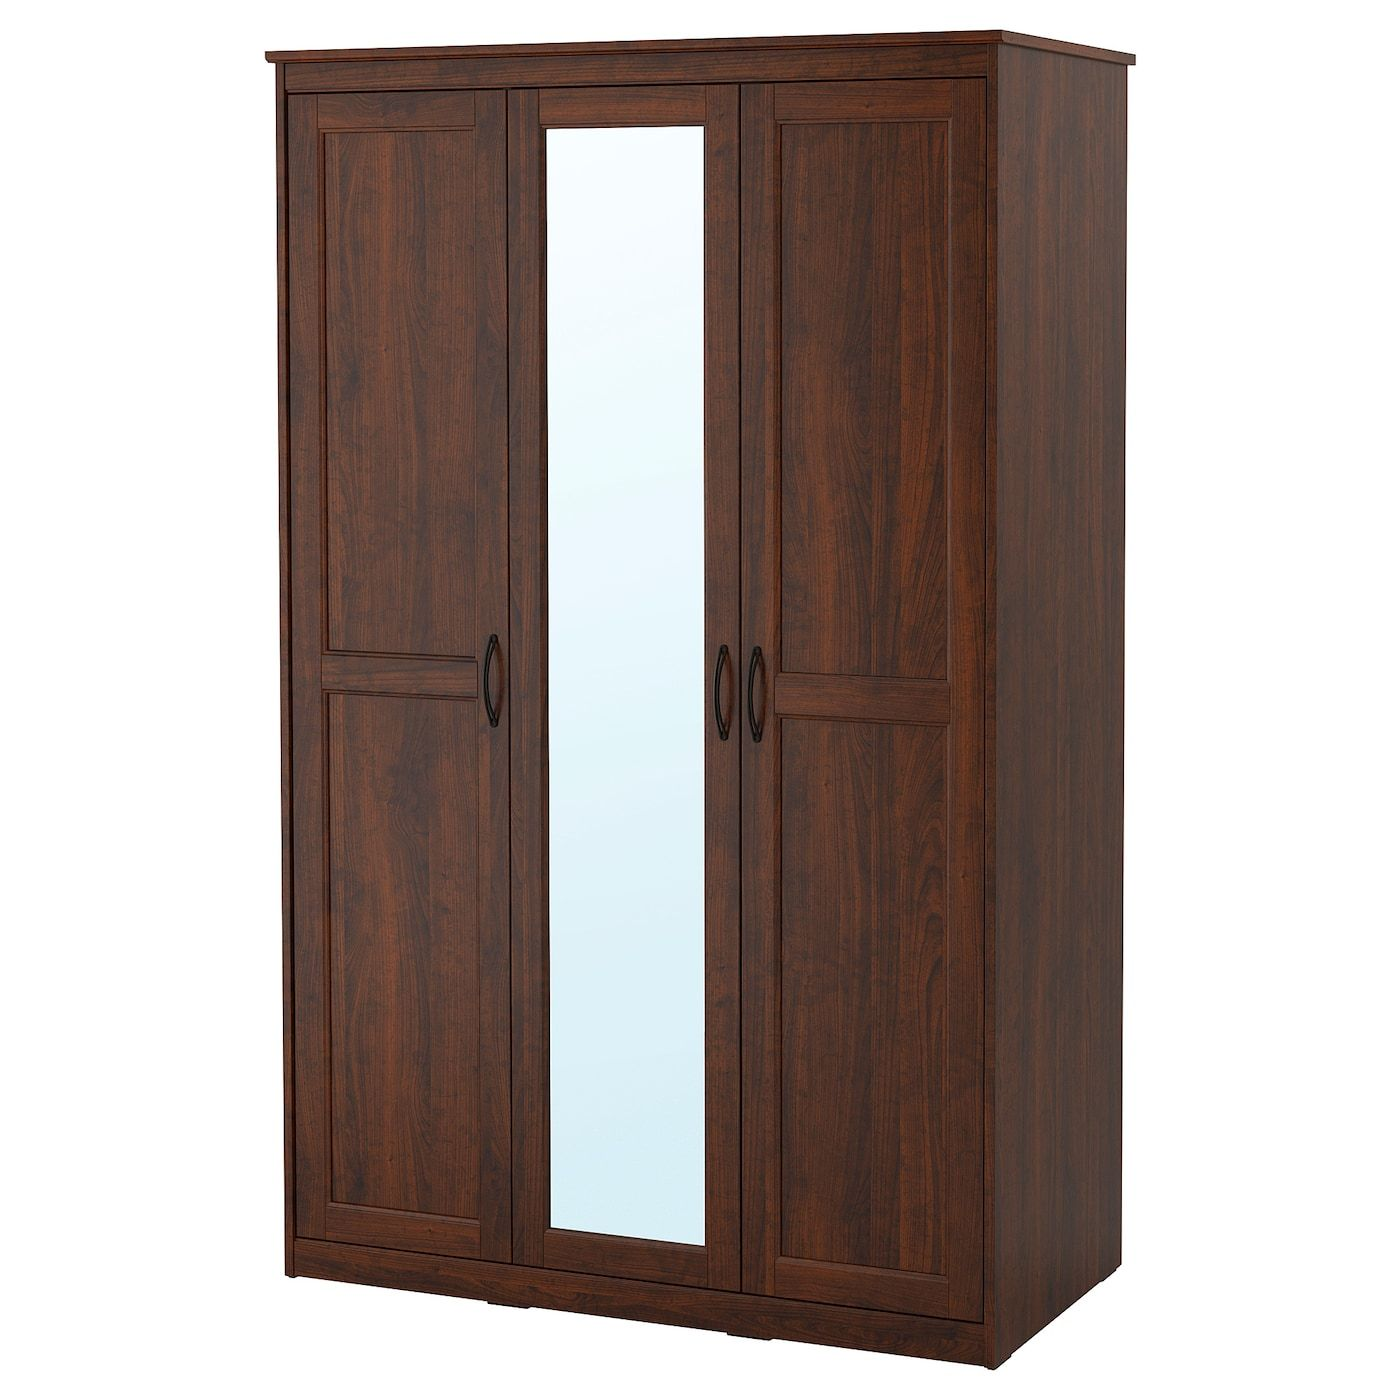 Songesand Wardrobe Brown 47 1 8x23 5 8x75 1 4 With Images